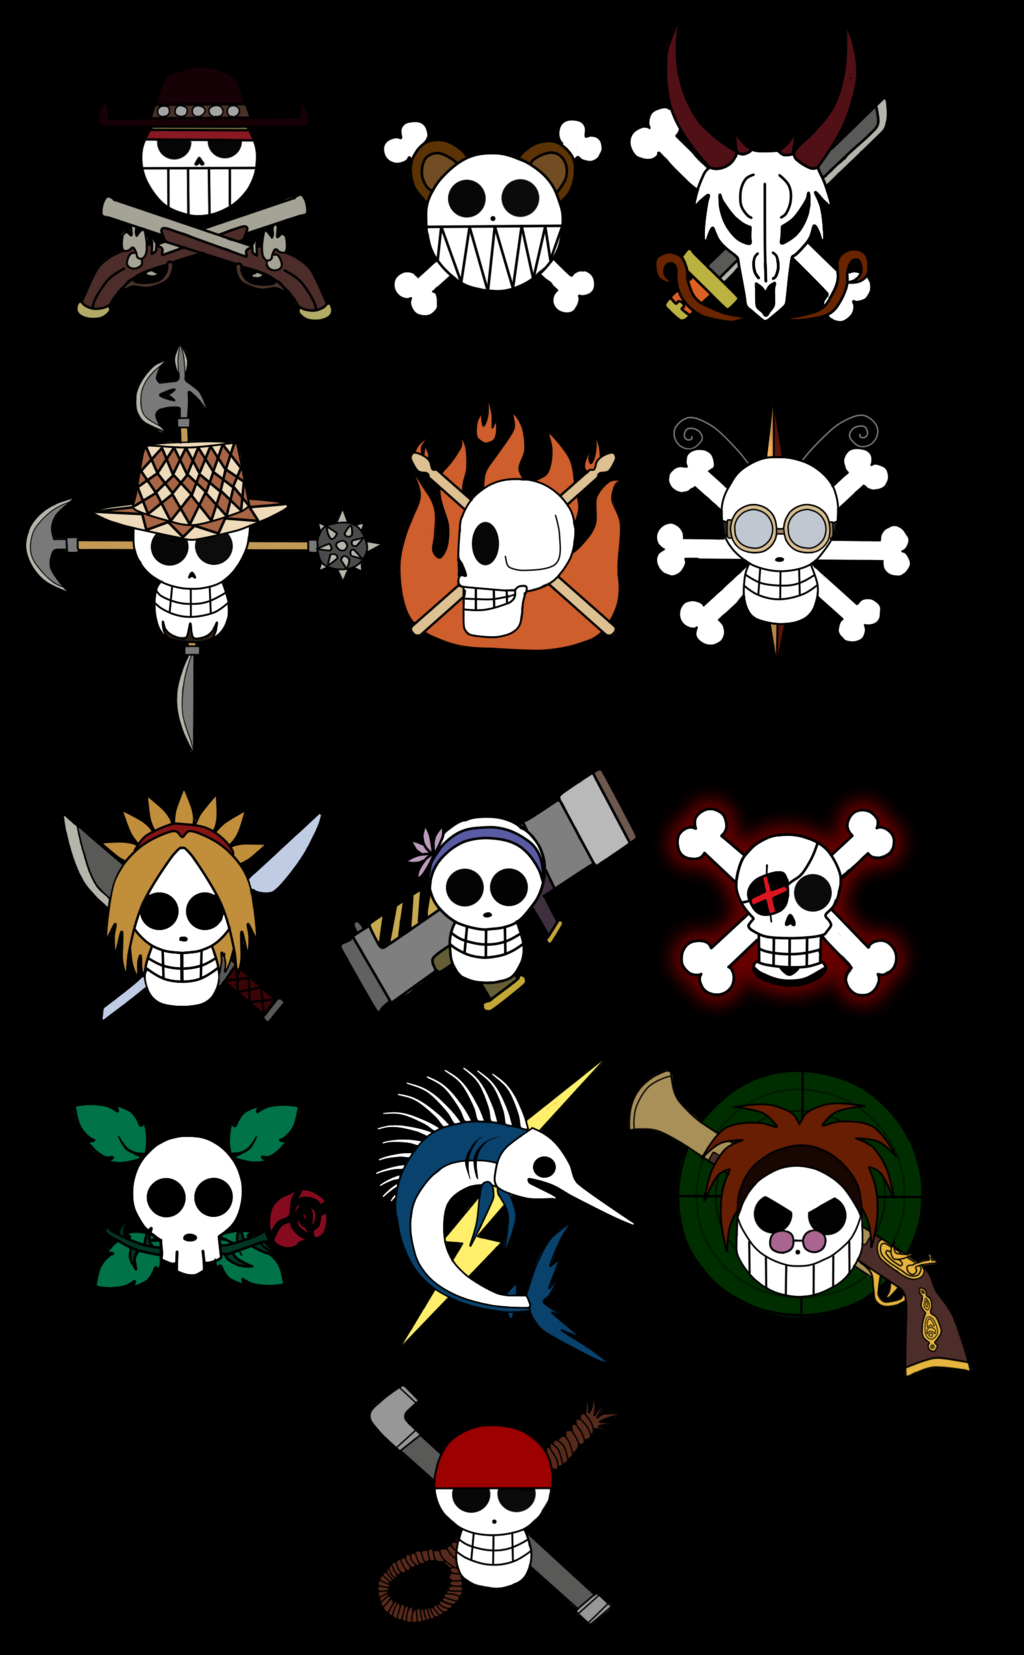 49 One Piece Jolly Roger Wallpaper On Wallpapersafari